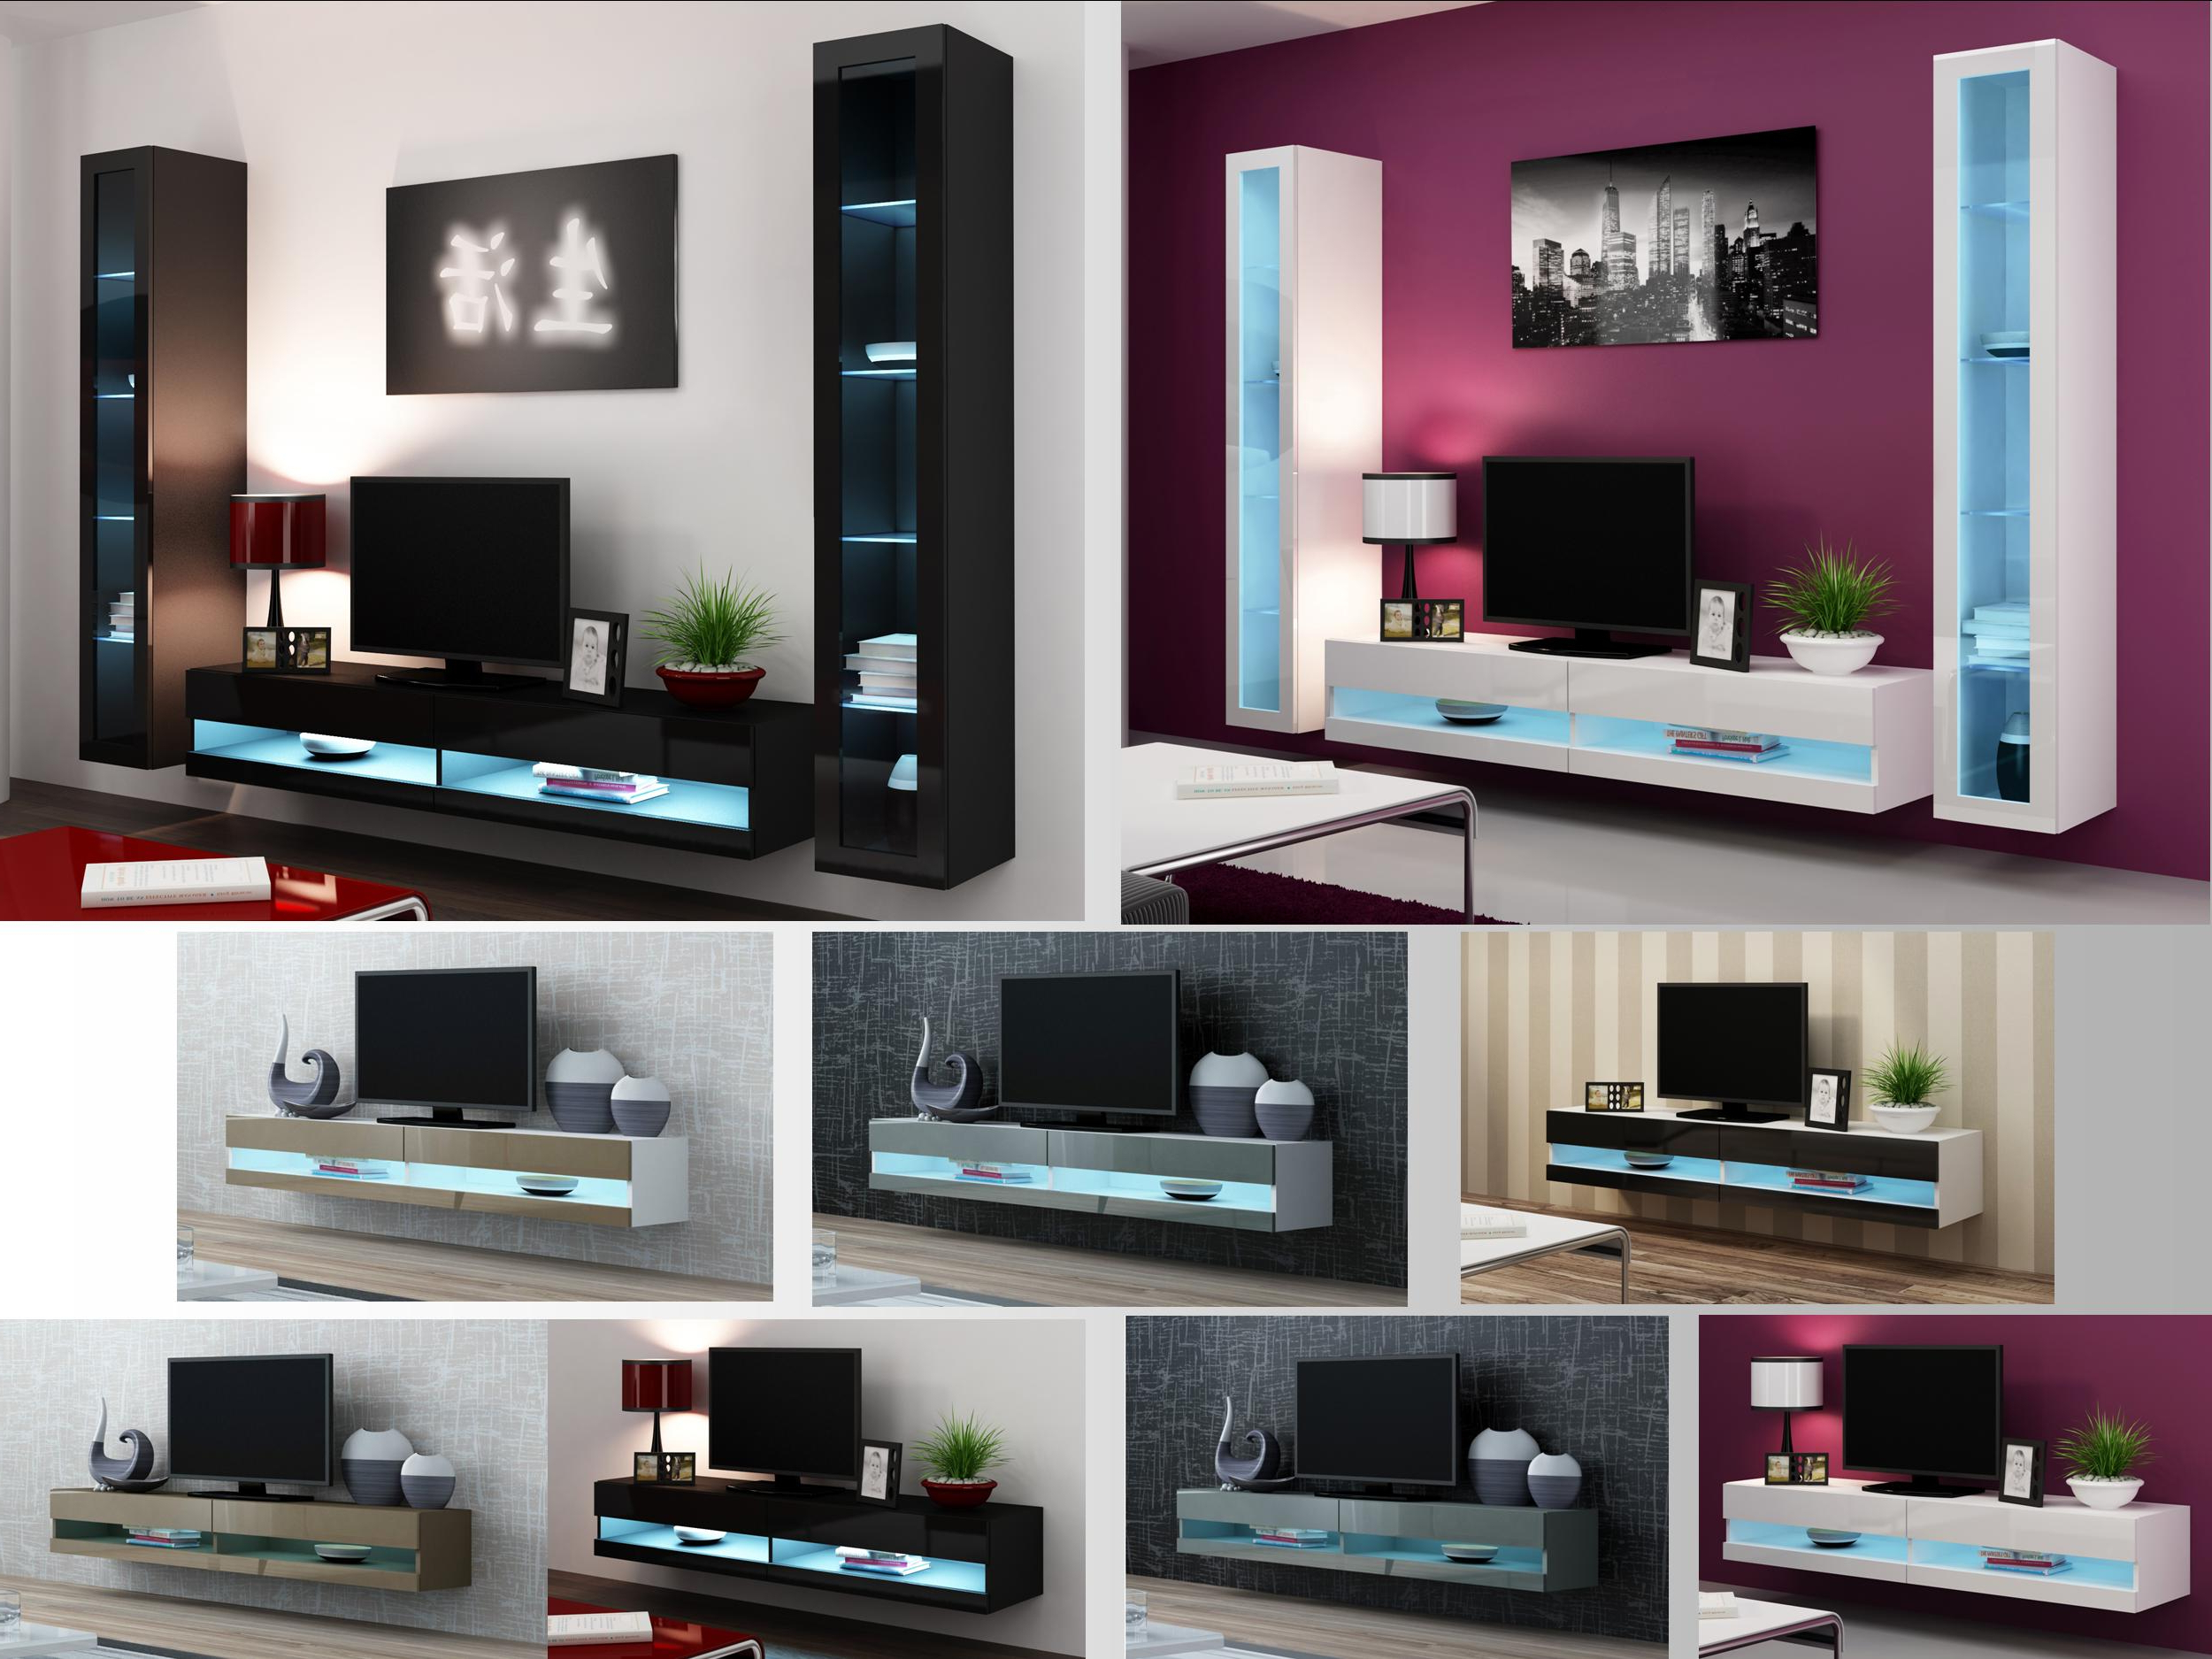 High Gloss Living Room Furniture – Tv Stand, Wall Mounted Cabinet Intended For Newest Tv Stands Cabinets (View 14 of 20)